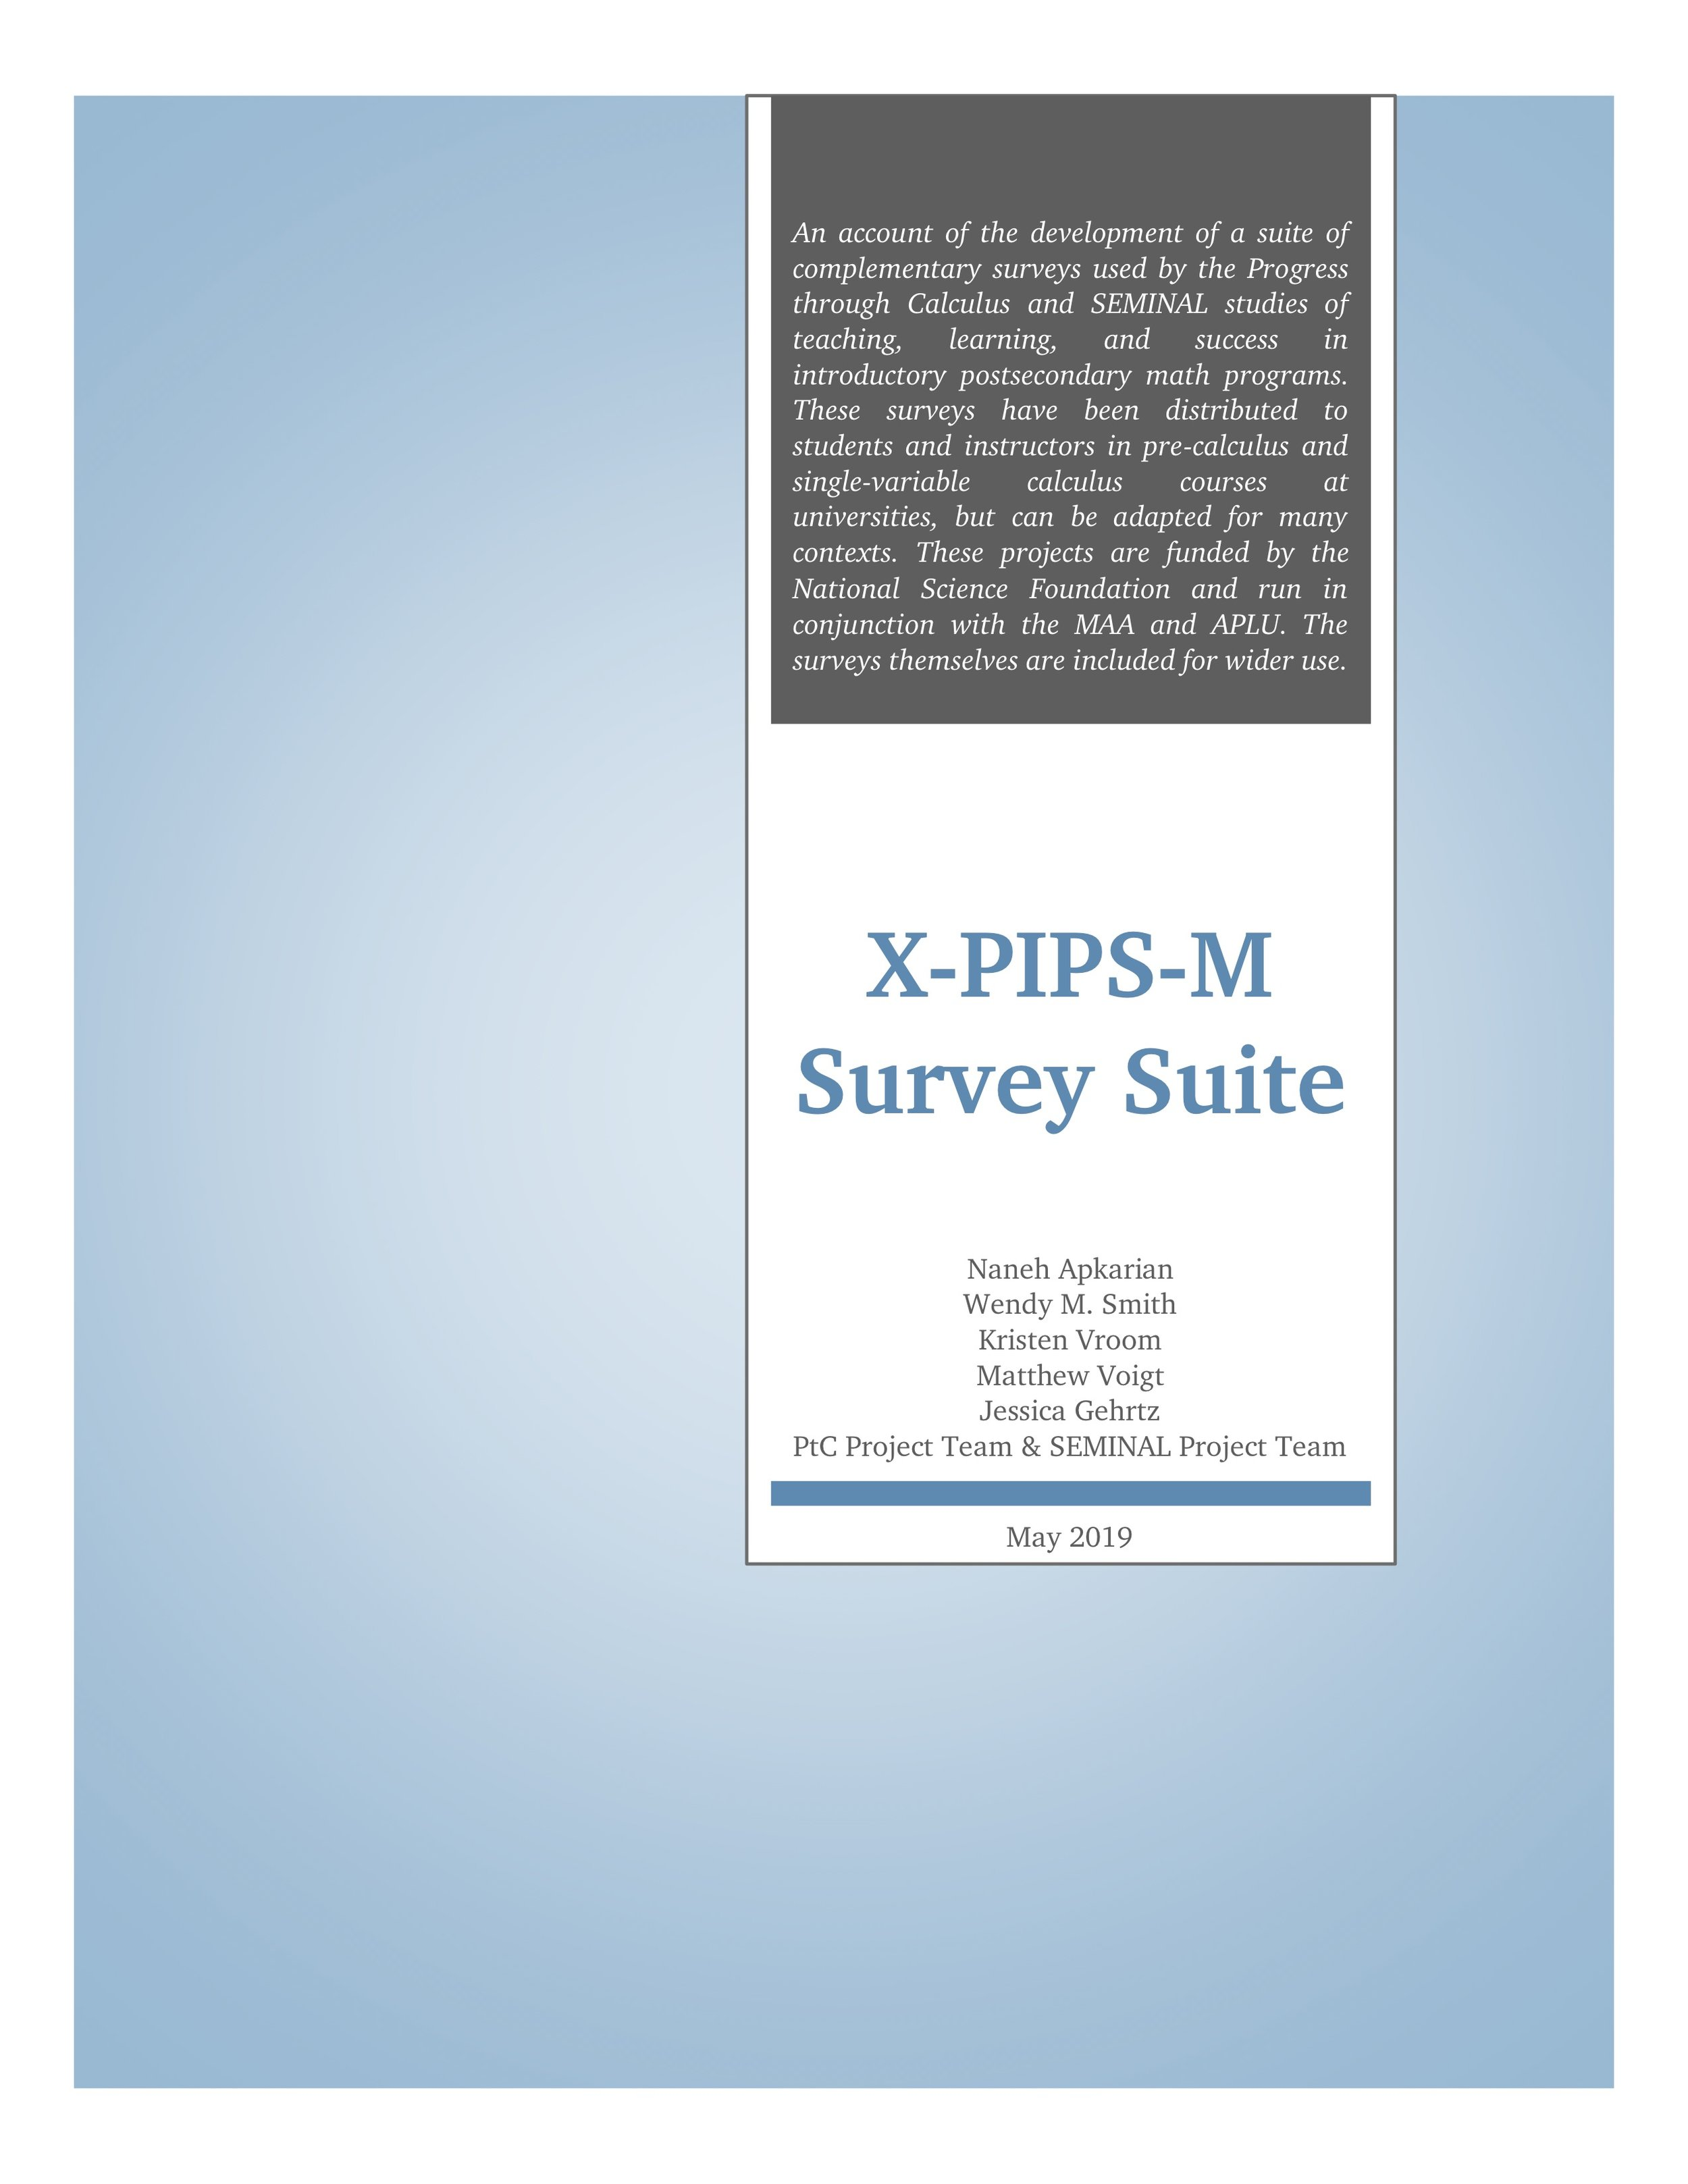 Cover of X-PIPS-M Survey Suite